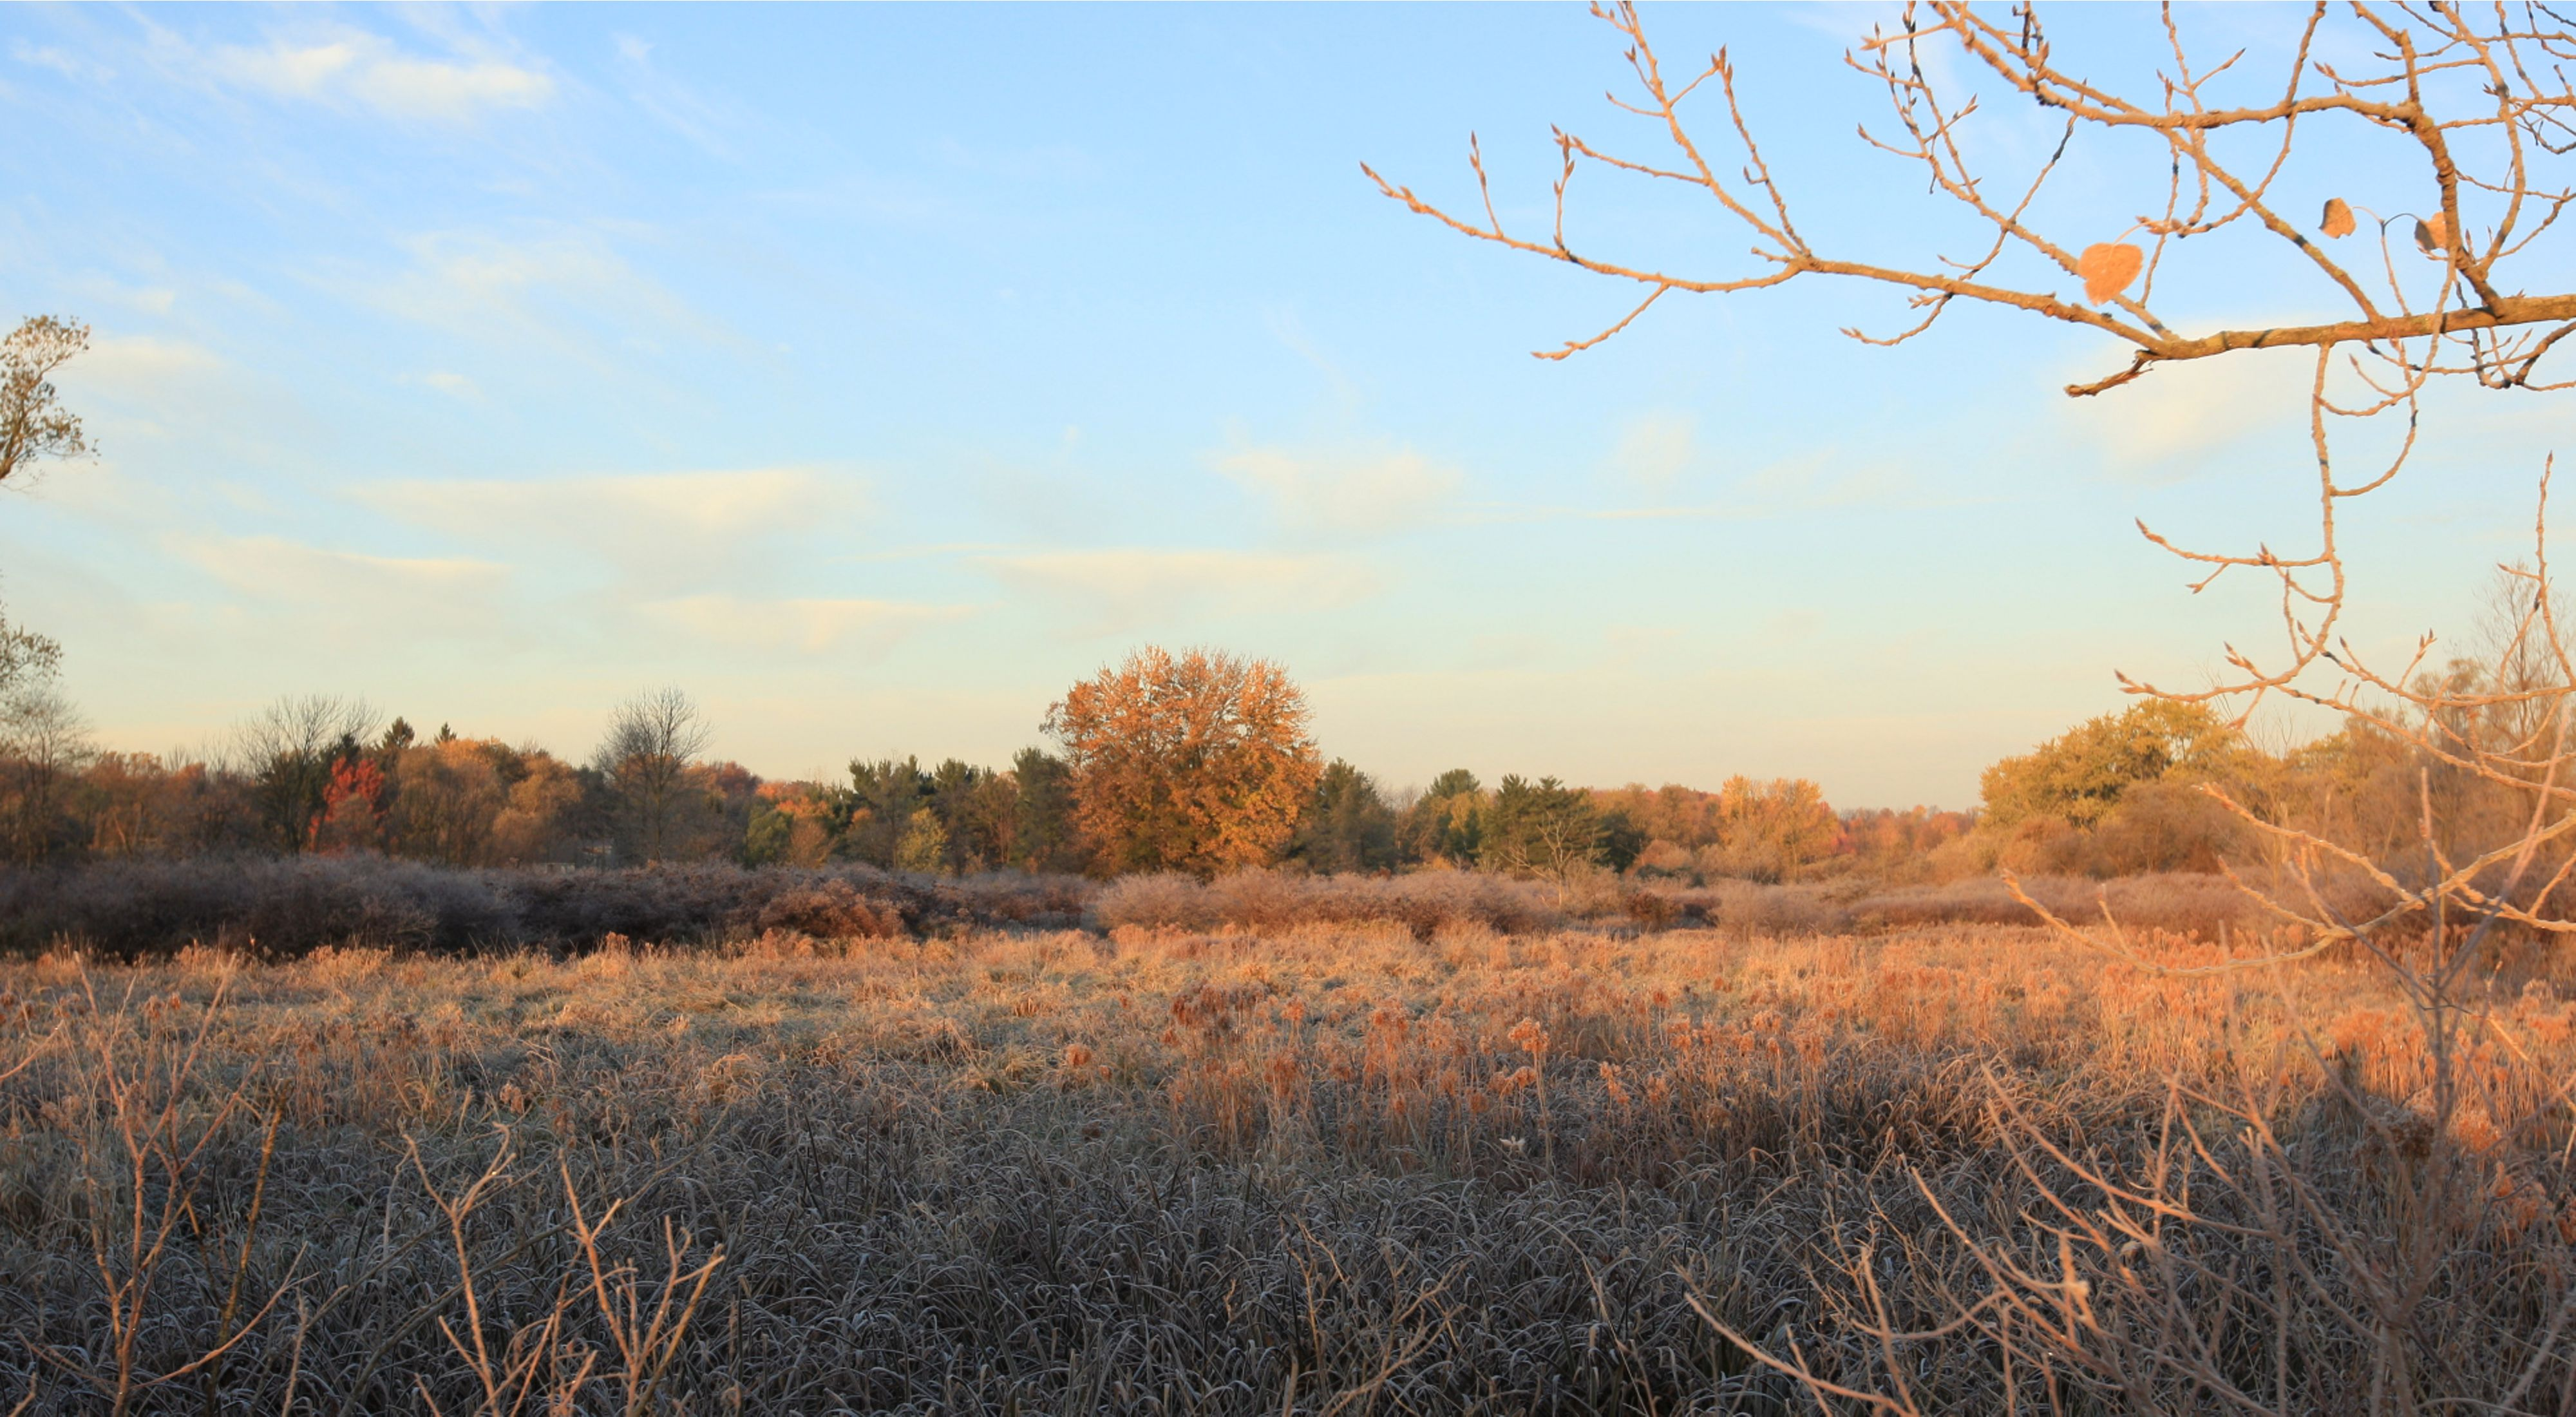 Beck Fen is one of only a few high-quality fens that remain of the once extensive wetland system that formed the upper watershed of Tinkers Creek.